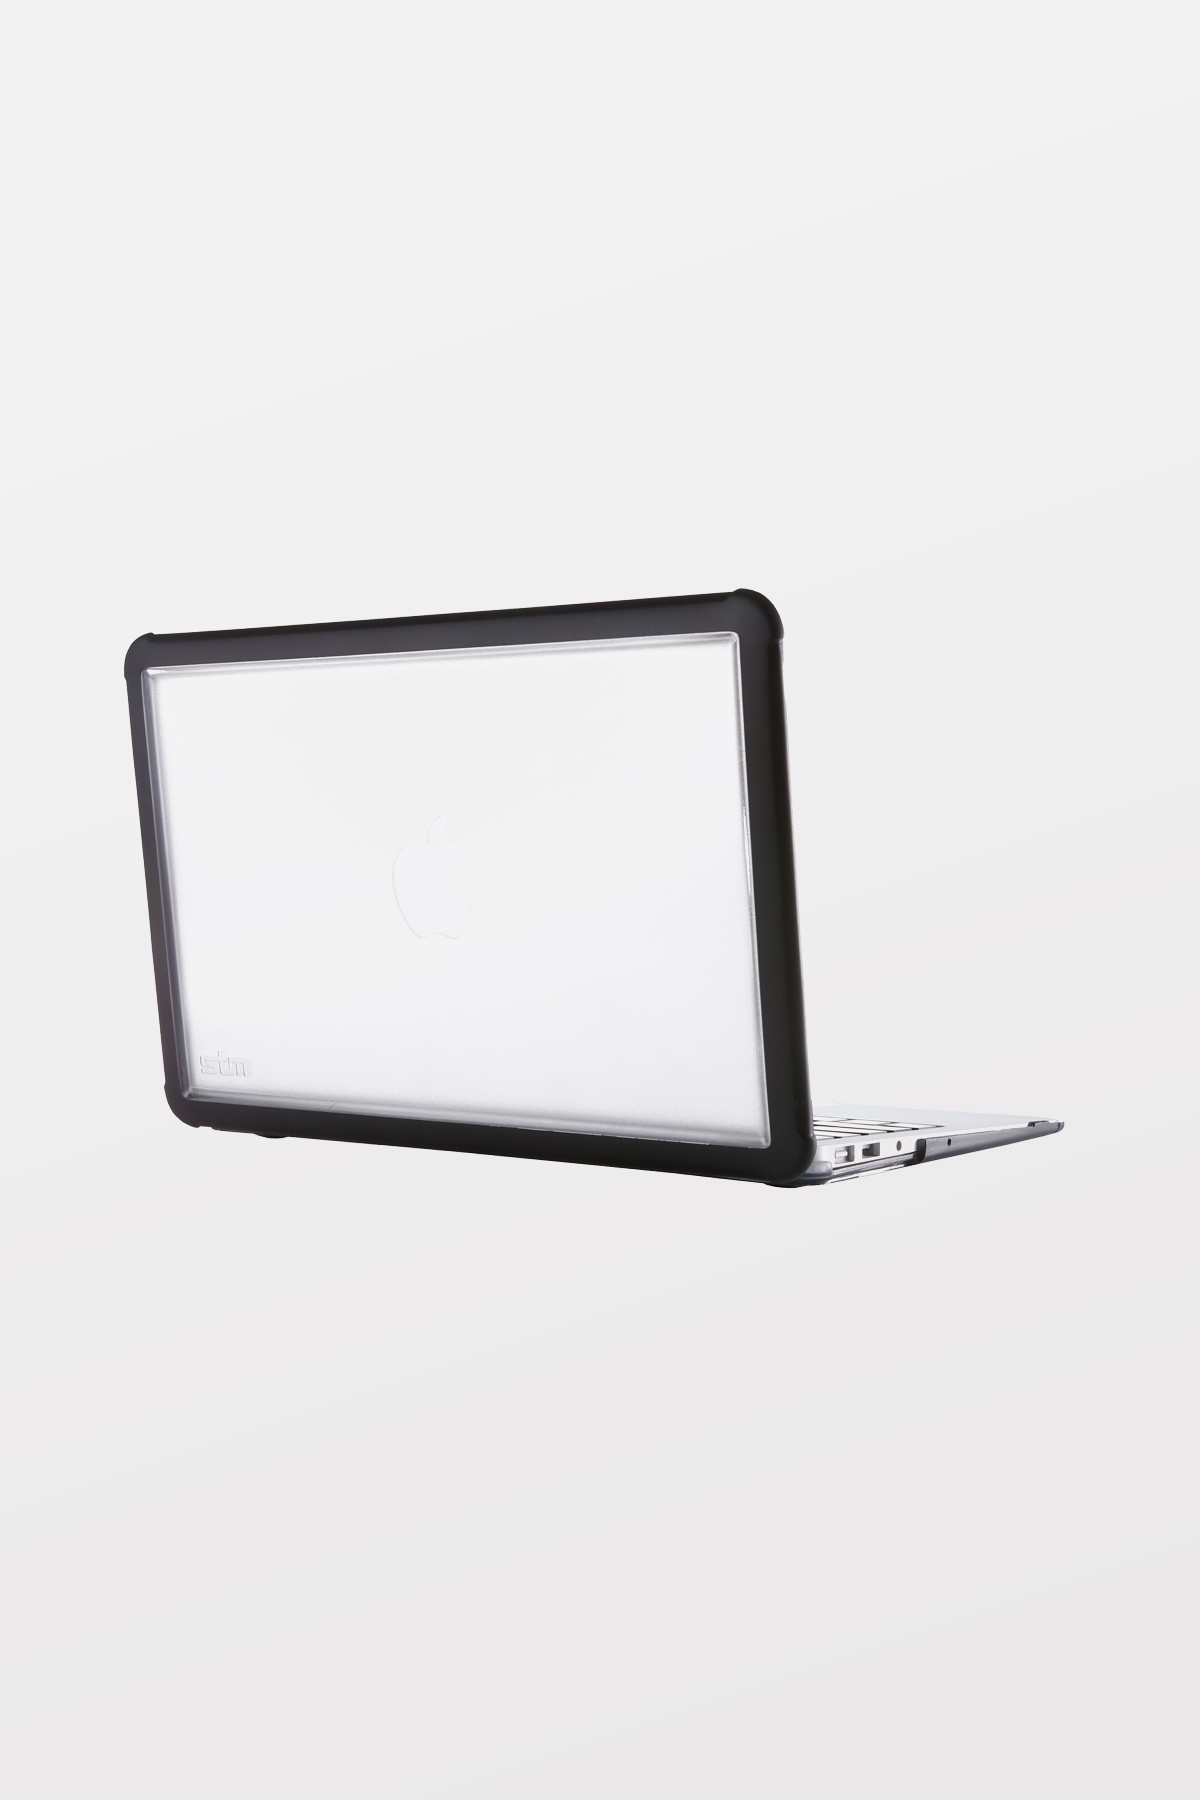 STM Dux for MacBook Air 13-inch